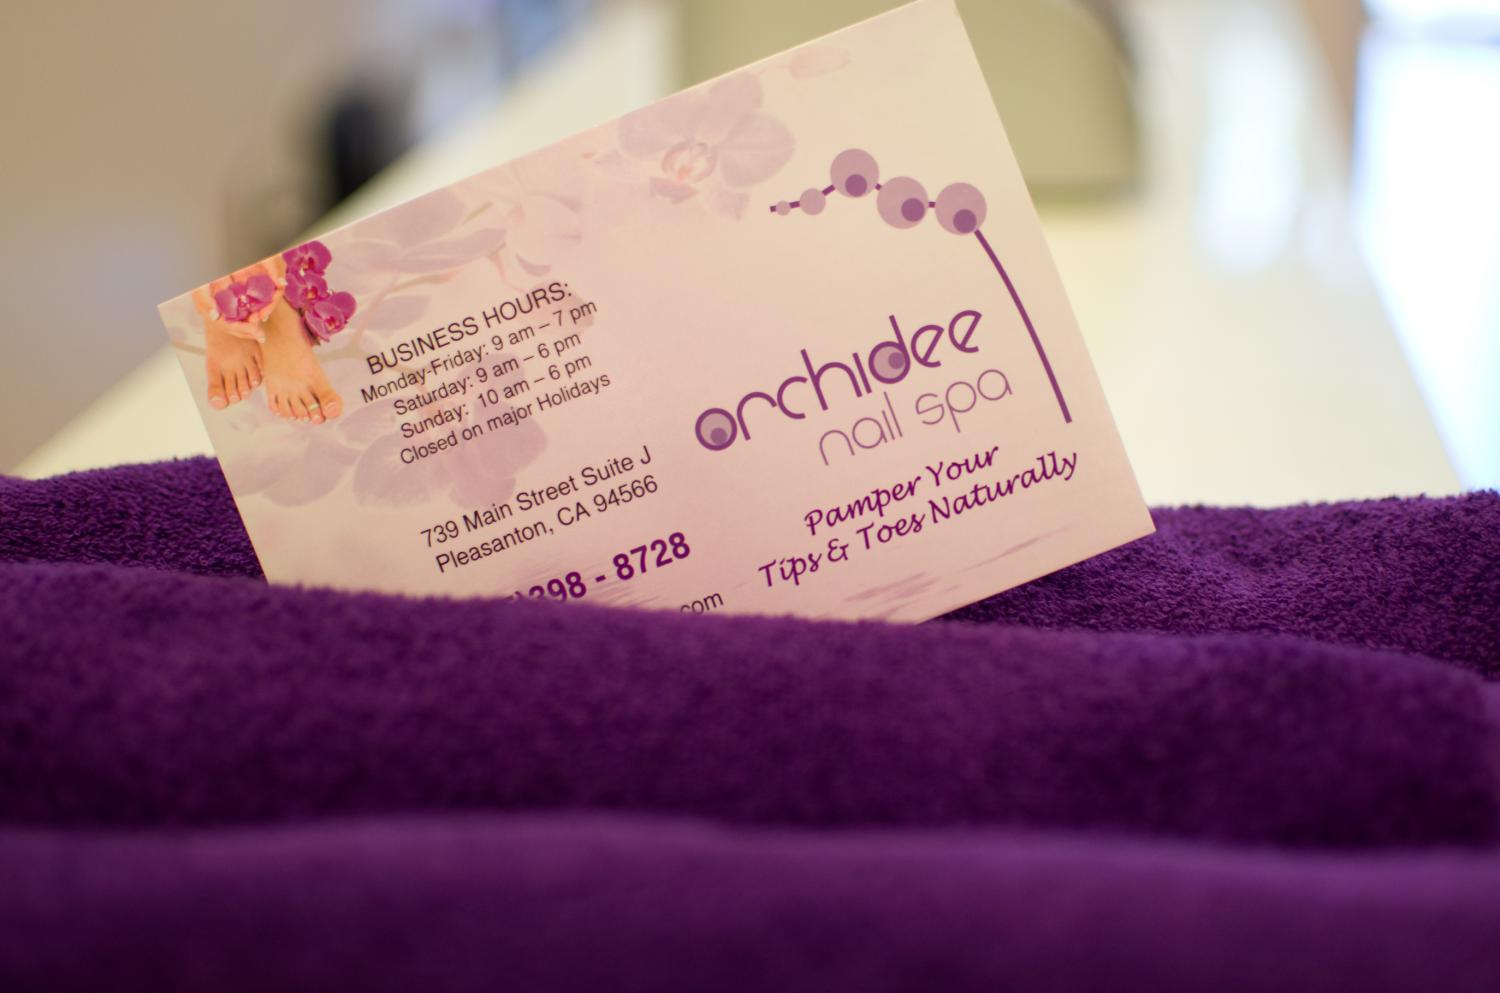 Orchidee Nail Spa Pleasanton